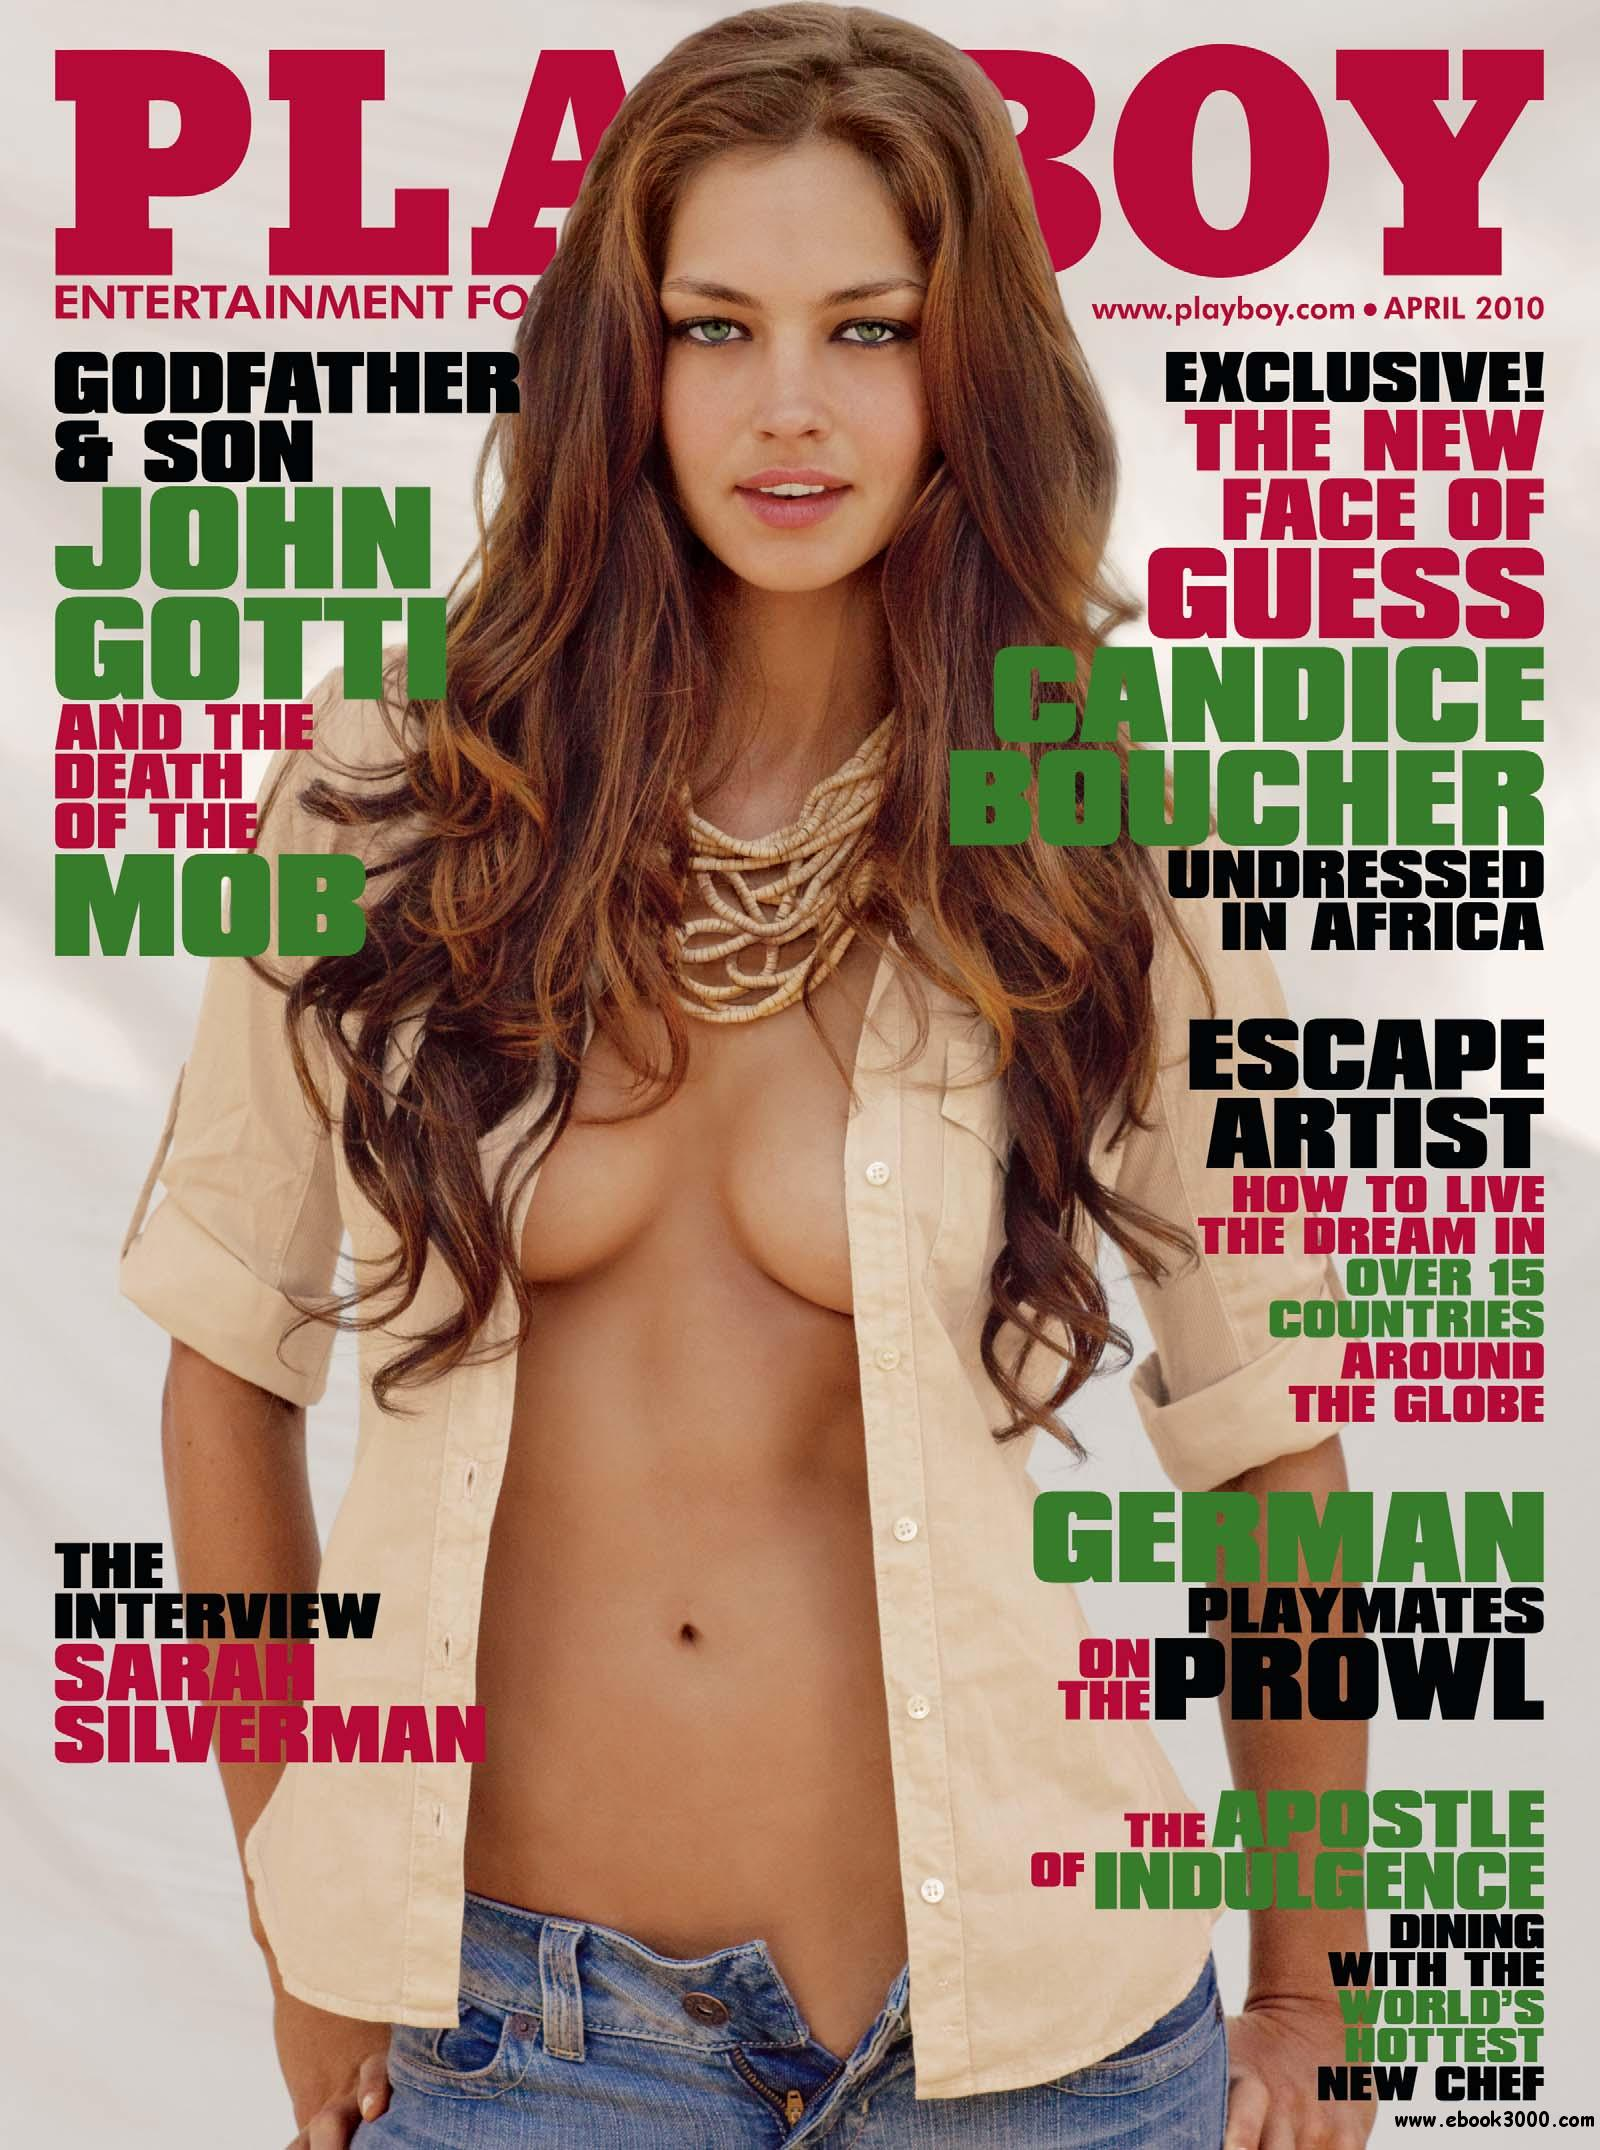 Playboy USA - April 2010 free download